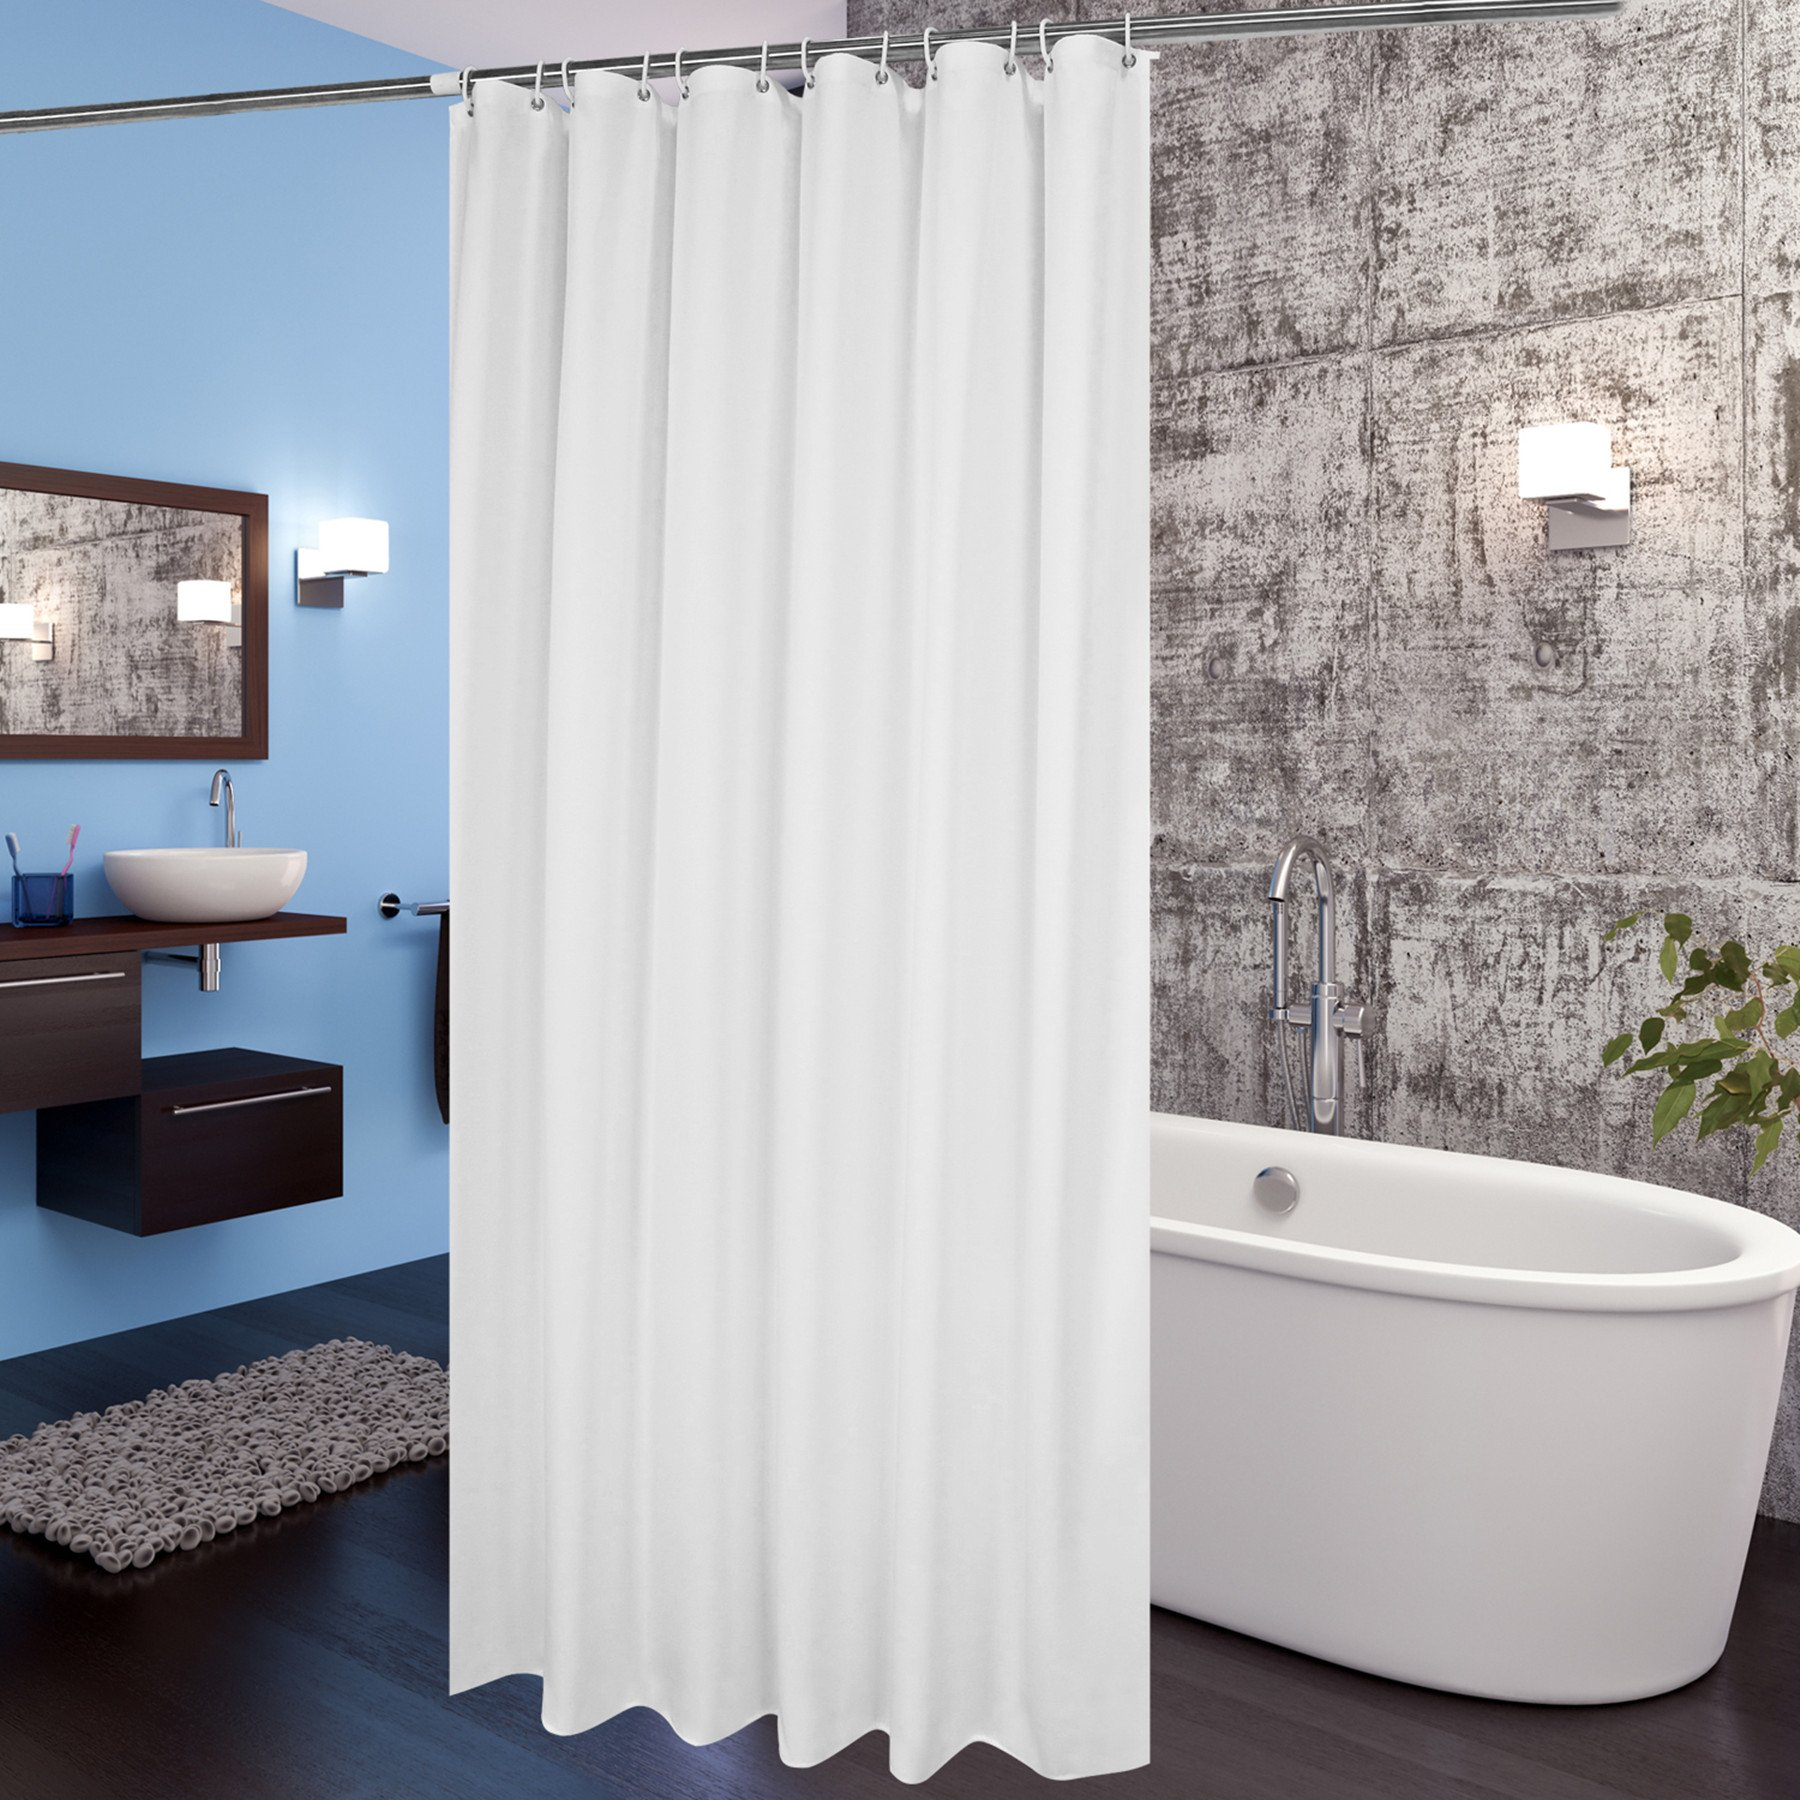 Aoohome Fabric Shower Curtain White Stall Size Bathroom For Hotel Mildew Resistant Waterproof 48 X 72 Inch